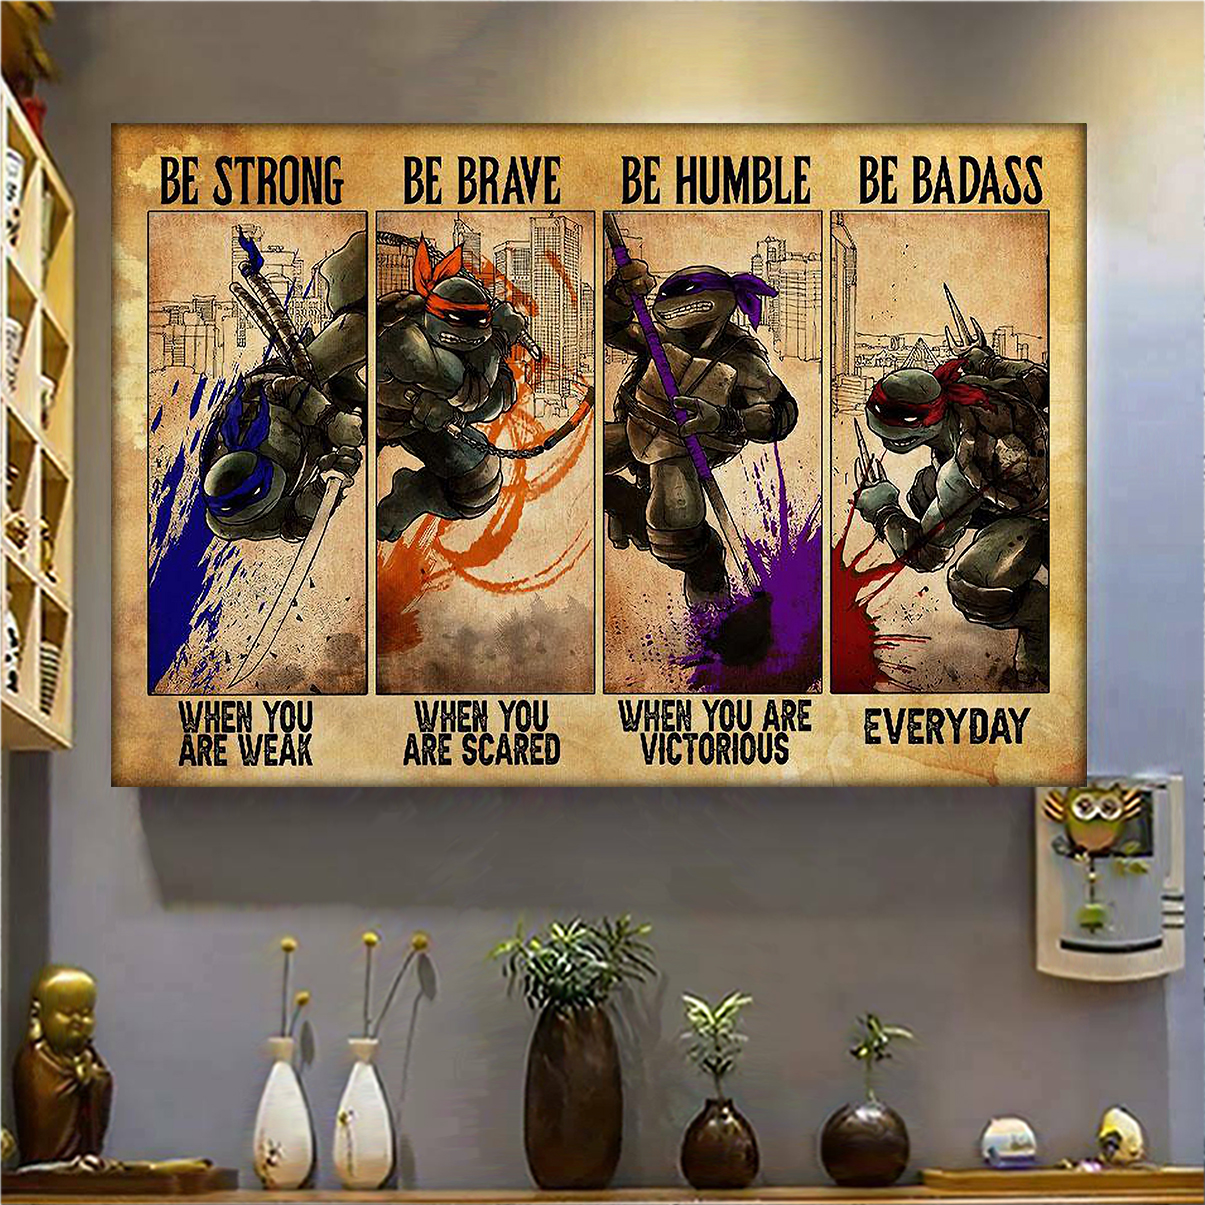 Teenage Mutant Ninja Turtles black be strong be brave be humble be badass poster A2